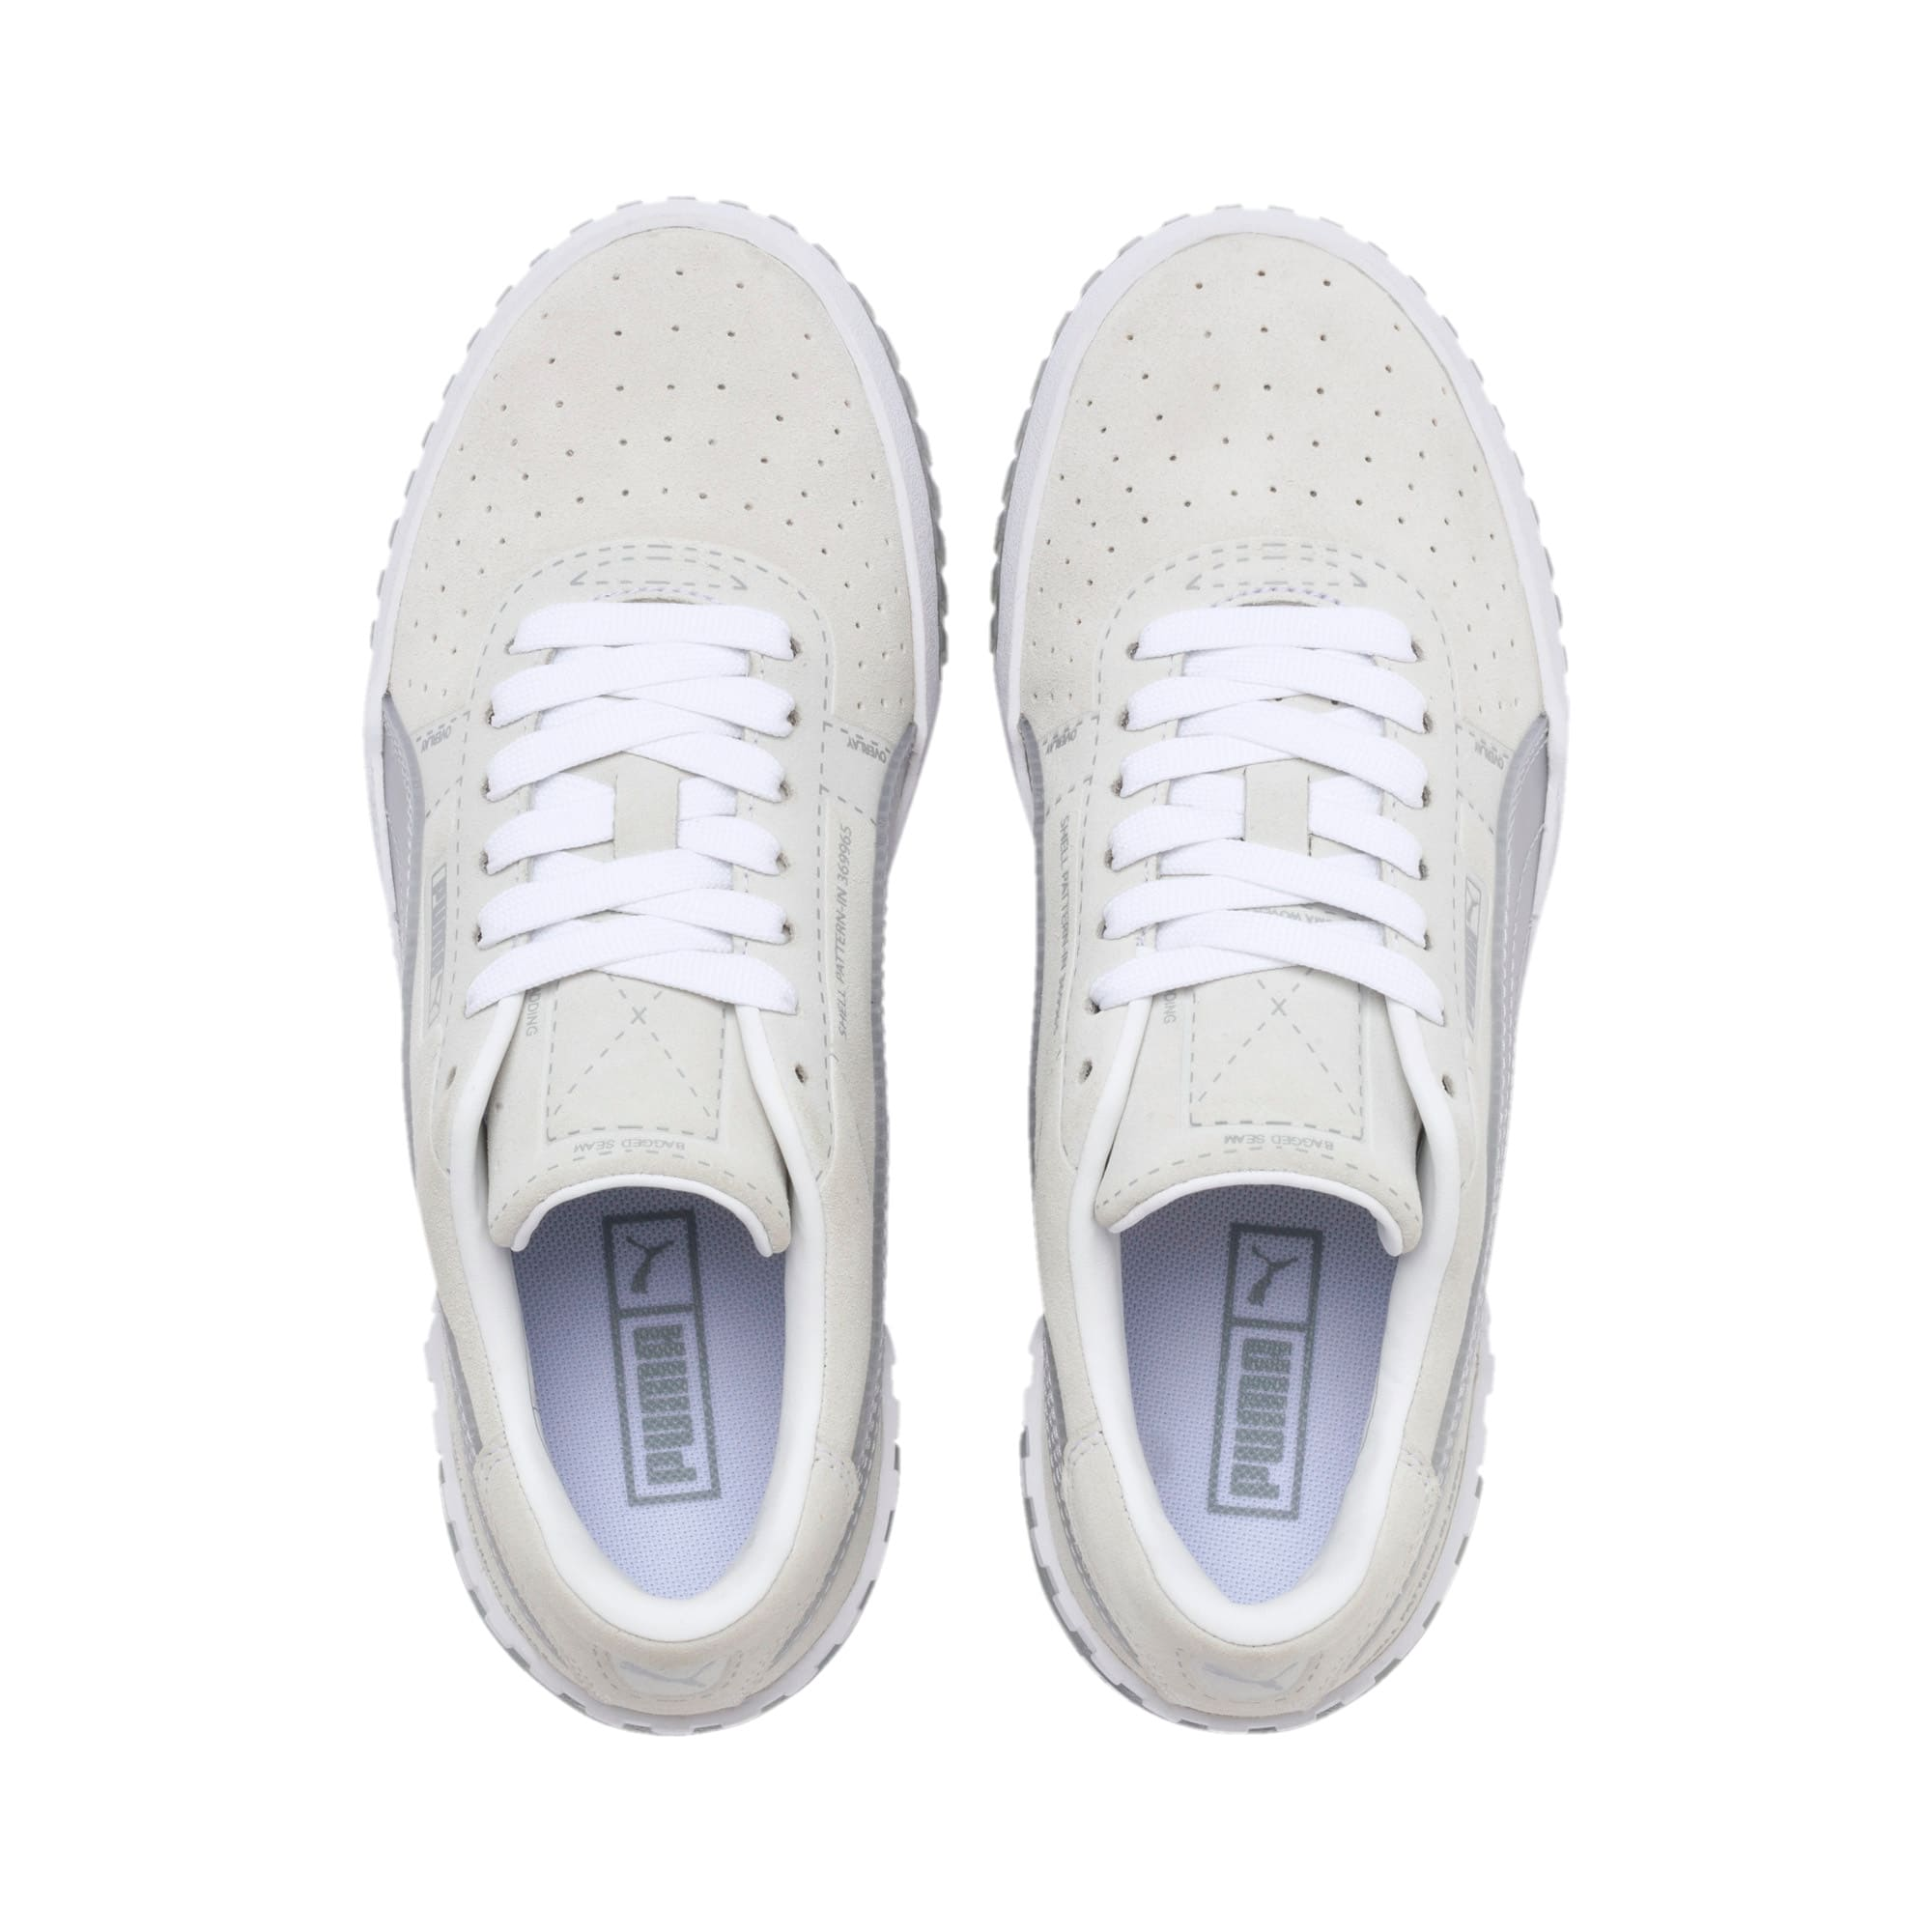 Thumbnail 7 of Cali Patternmaster Women's Trainers, Puma White-Quarry, medium